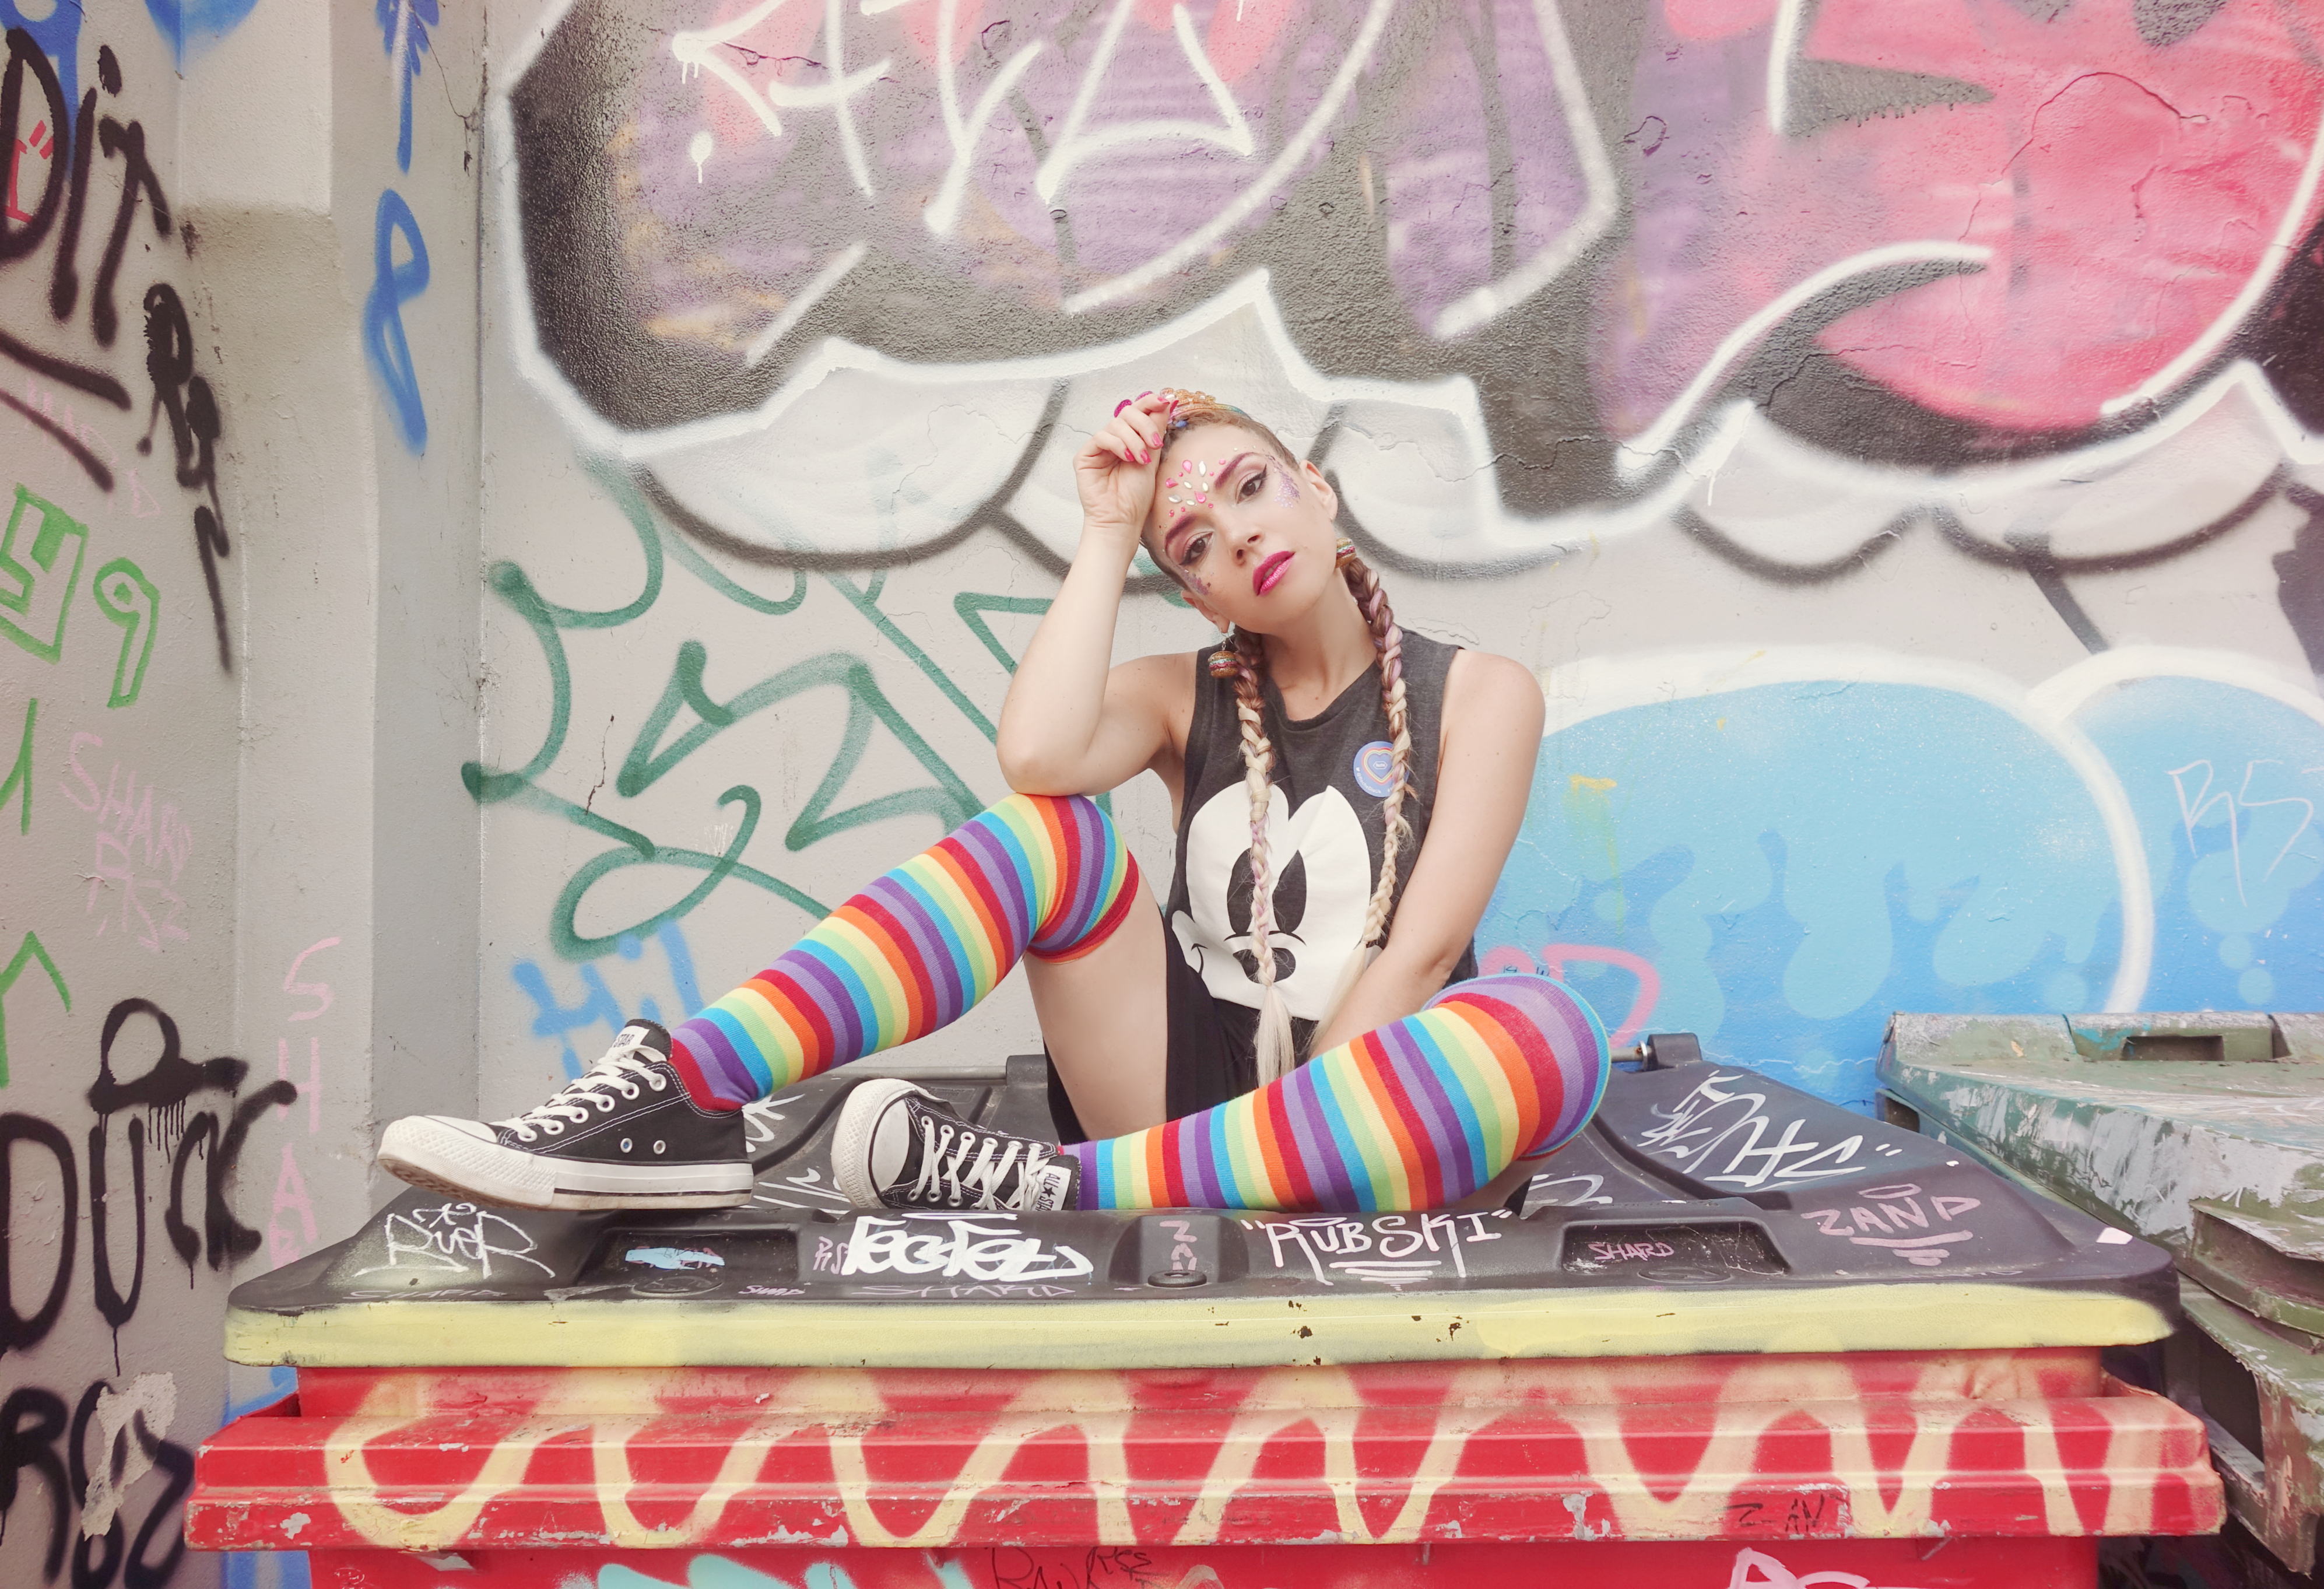 Calcetines-de-arcoiris-PiensaenChic-influencer-ChicAdicta-blog-de-moda-trendy-hairstyles-Chic-adicta-mickey-top-Piensa-en-Chic